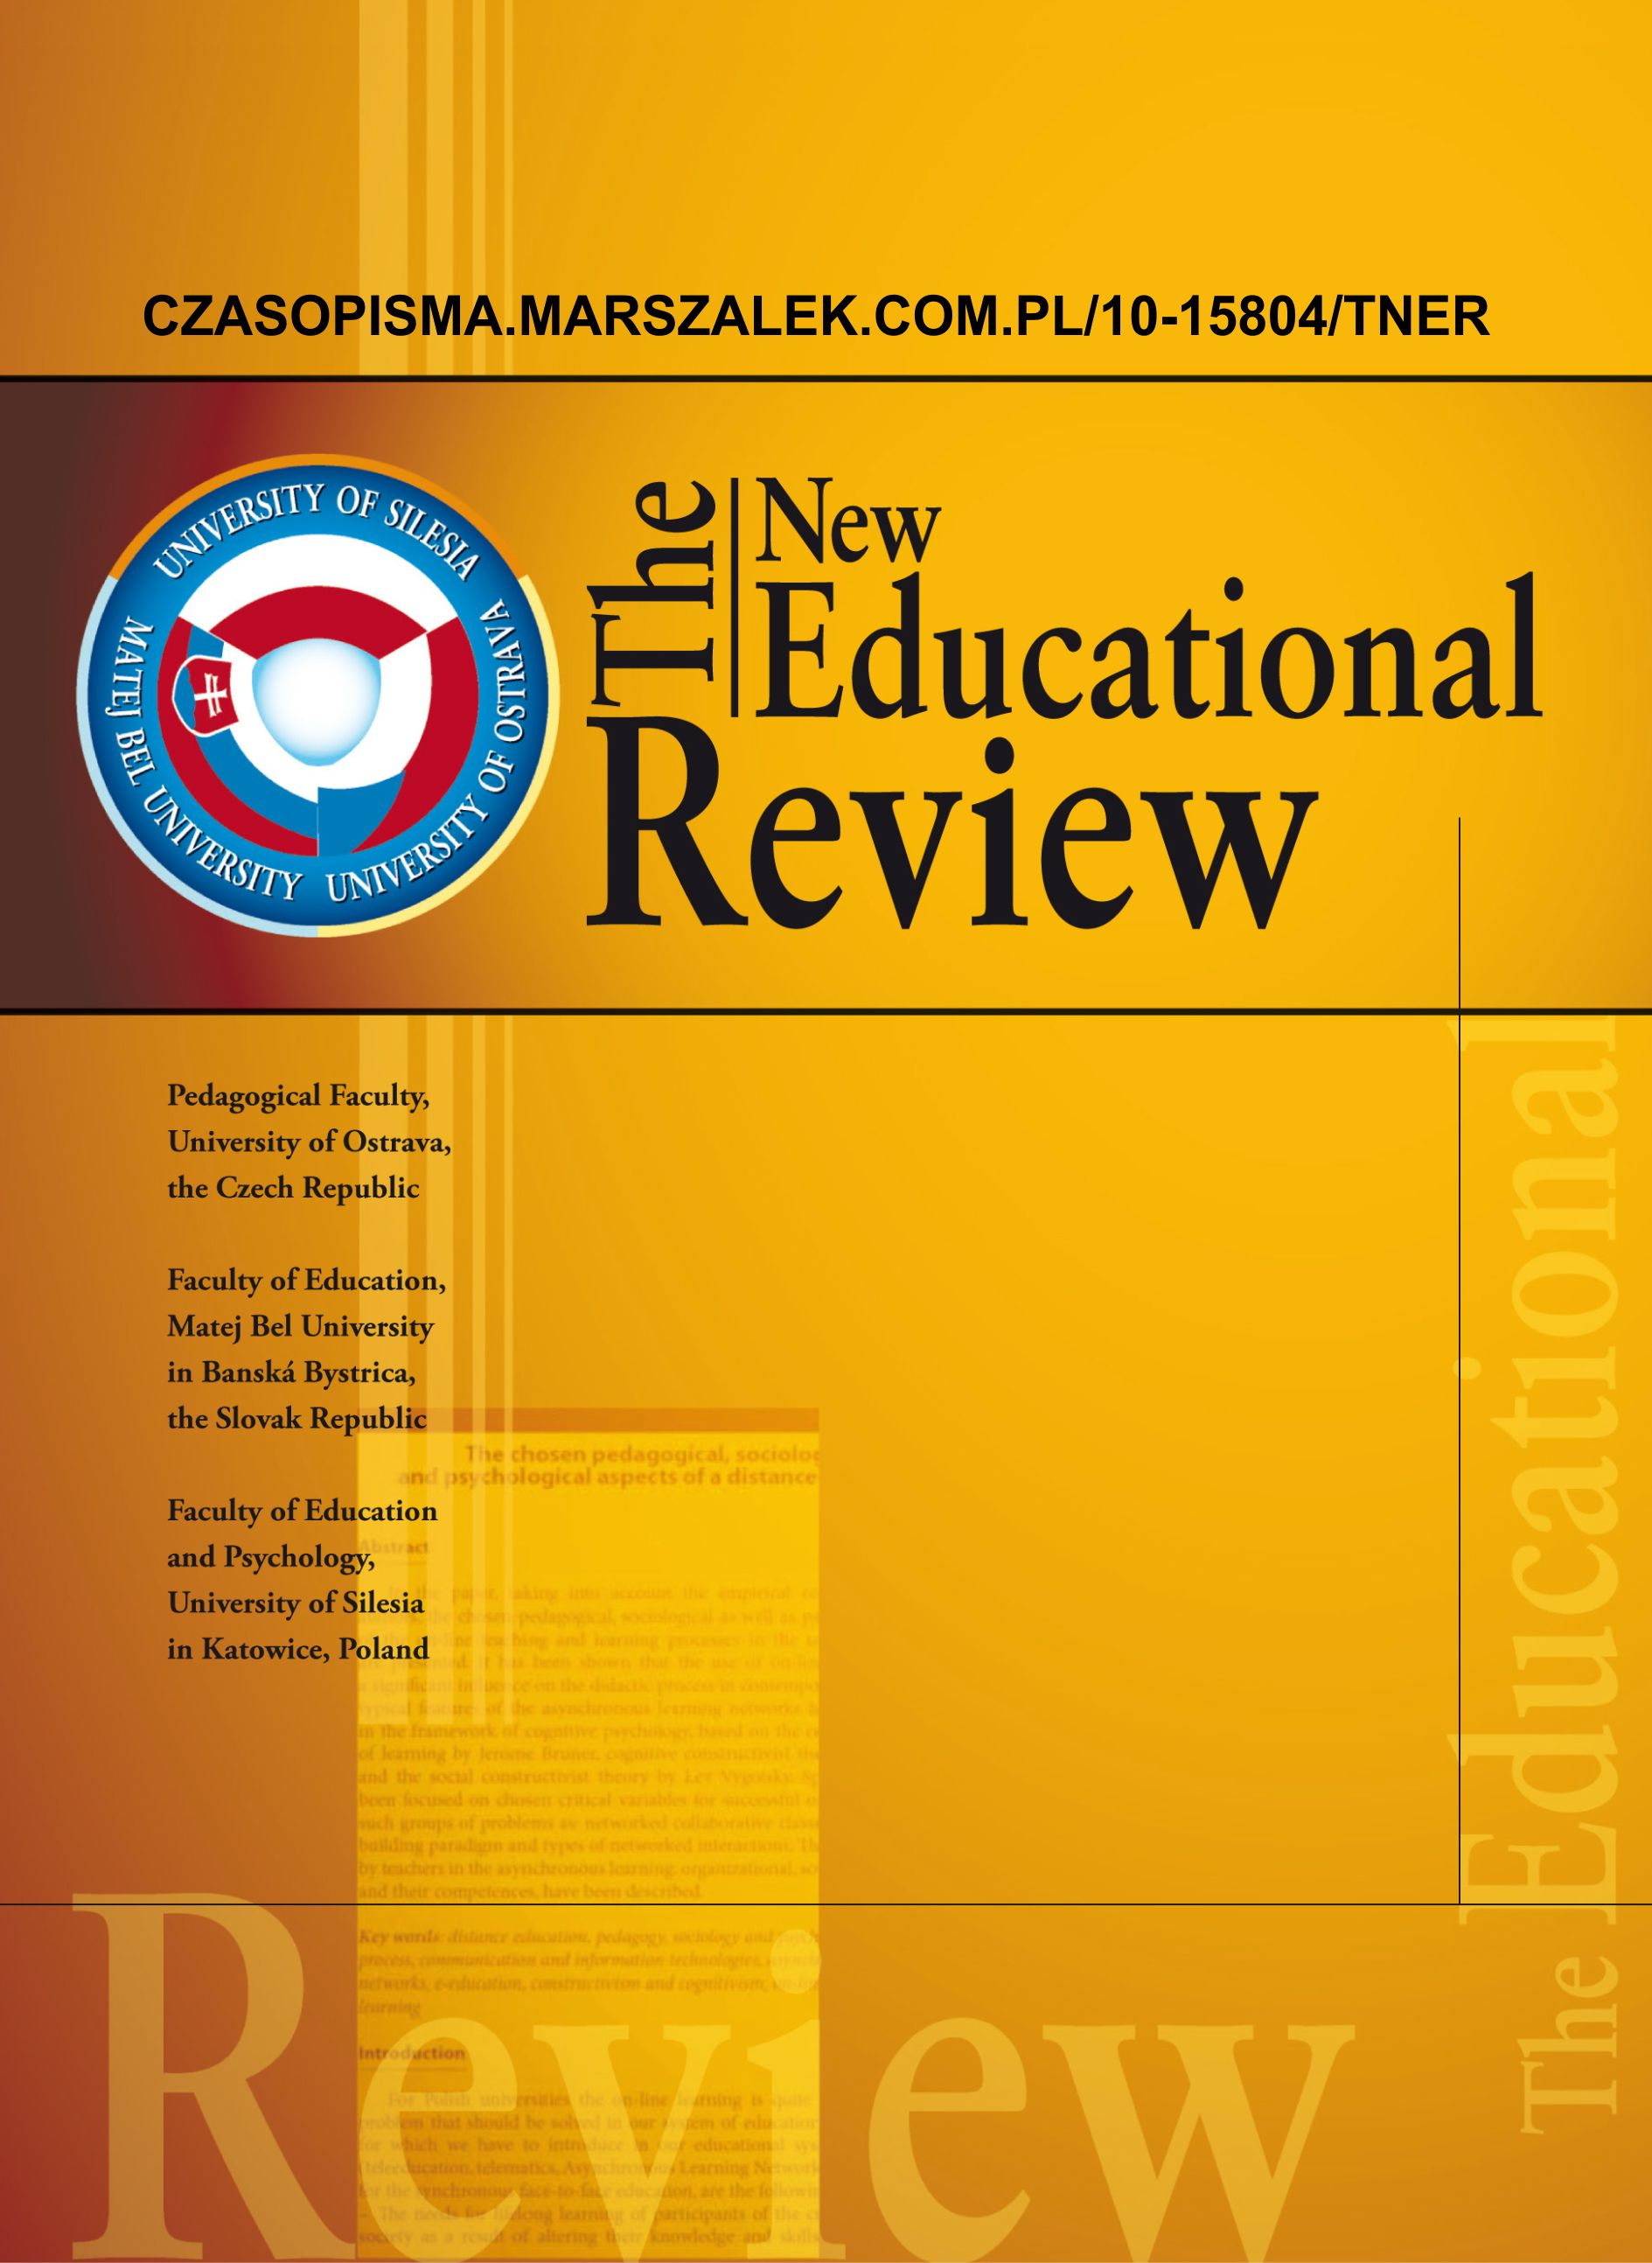 The New Educational Review